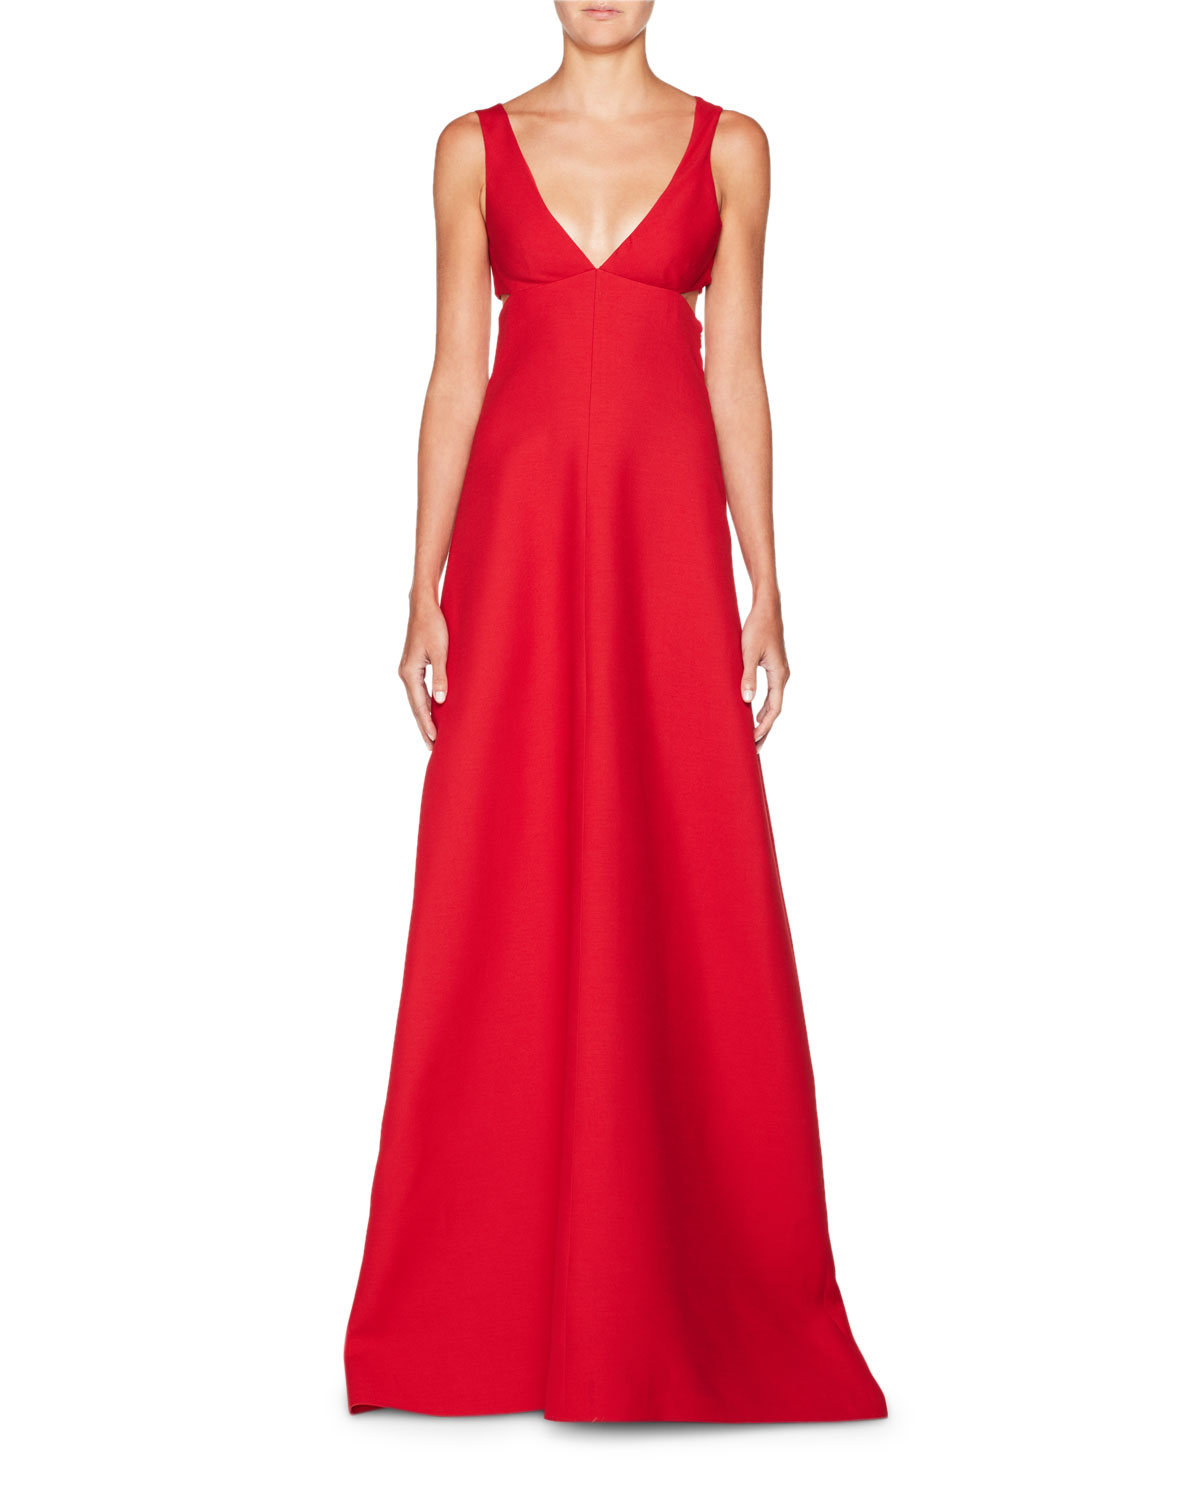 Valentino Deep-V Sleeveless Cutout Crepe Evening Gown | Neiman Marcus